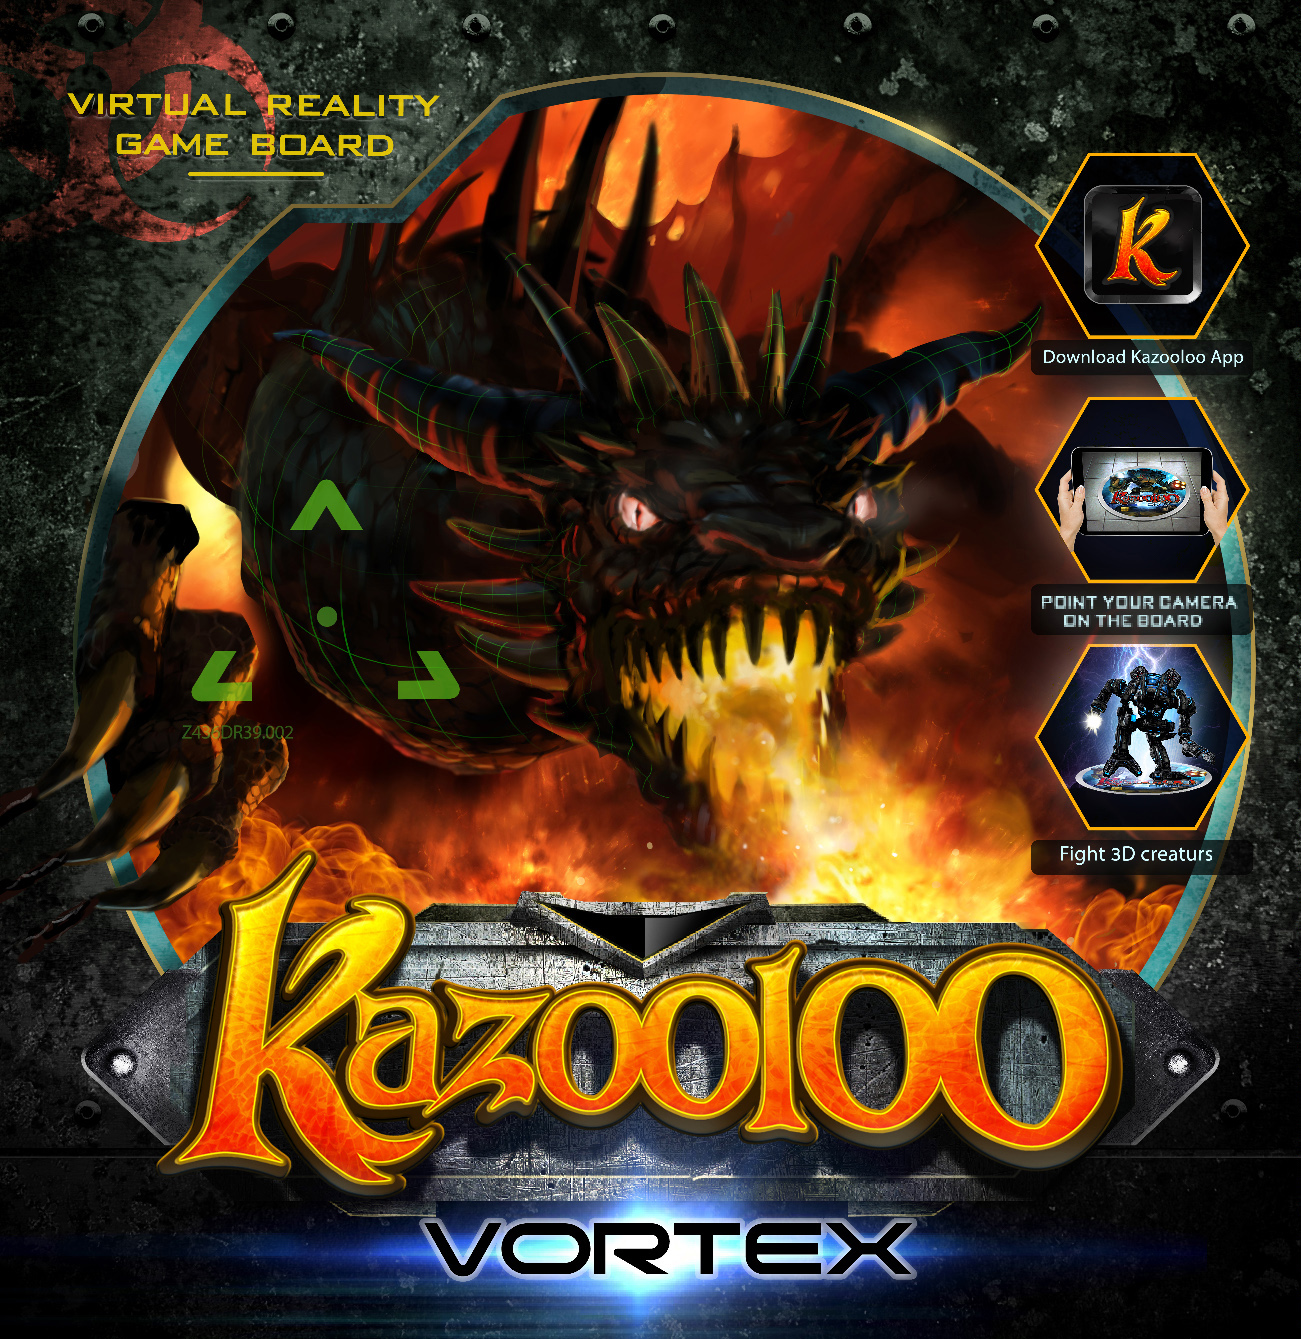 Kazooloo Cover